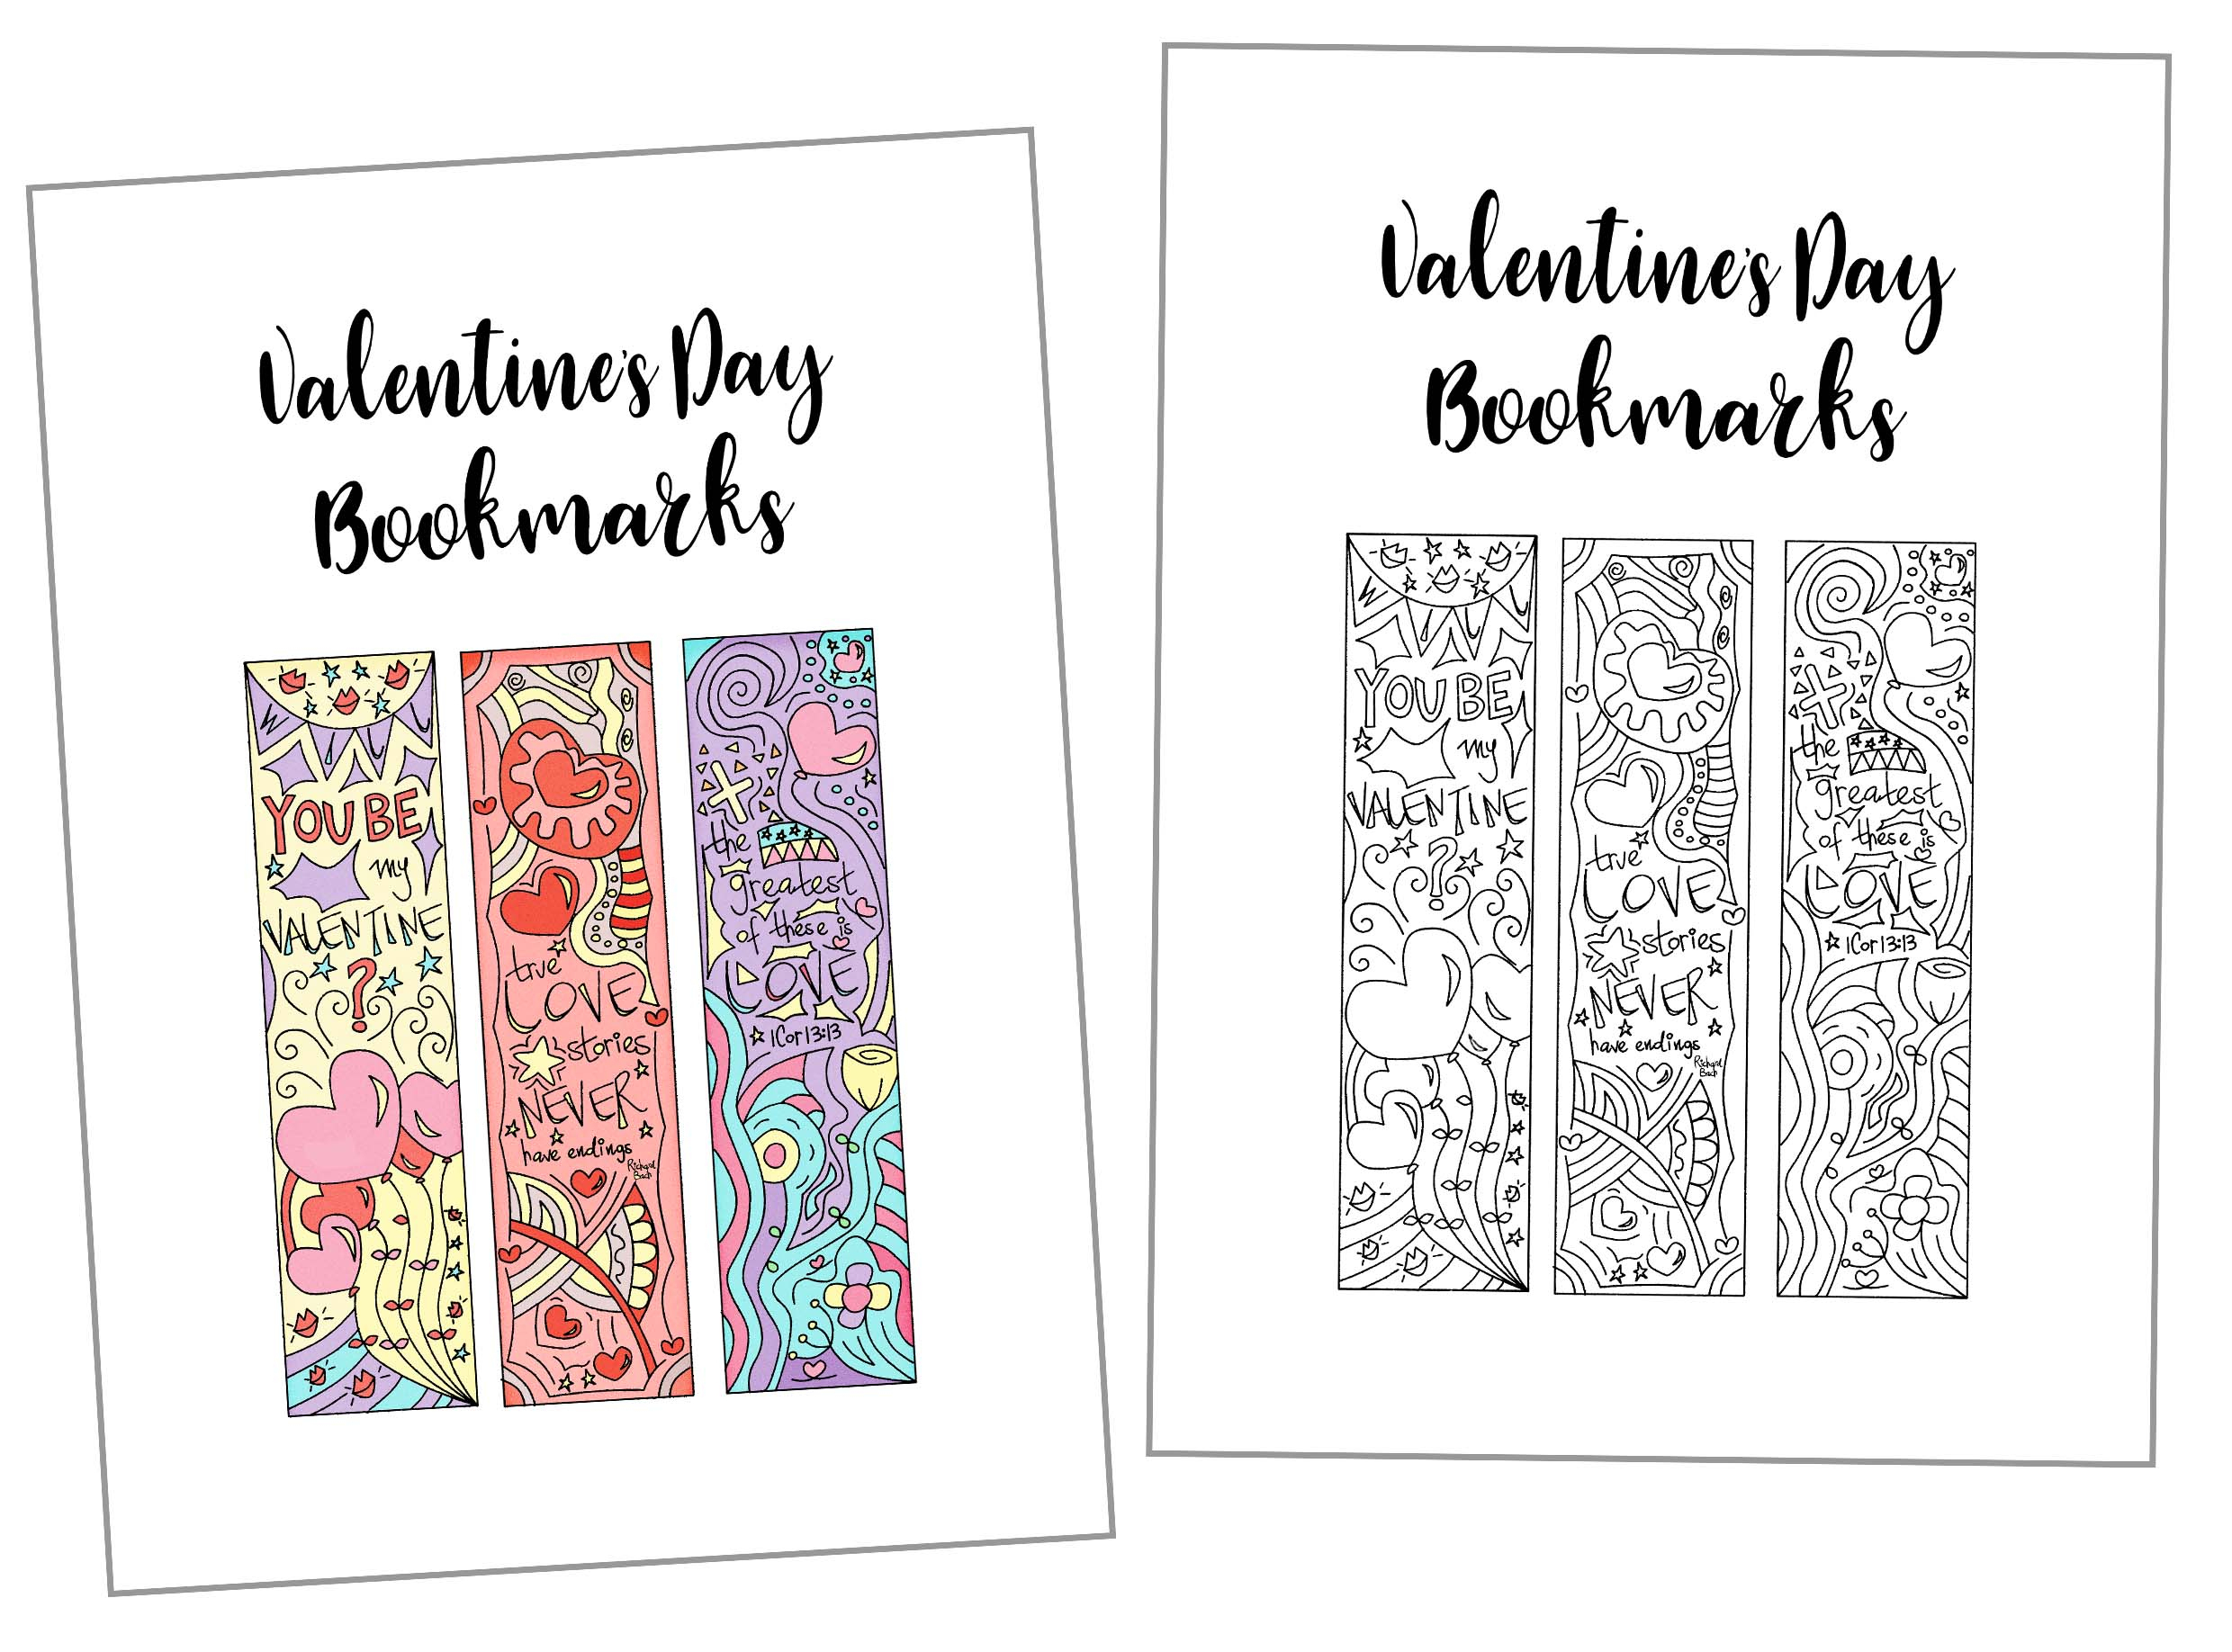 Coloring Valentine's Day Bookmarks Free Printable ~ Daydream Into - Free Printable Valentine Bookmarks